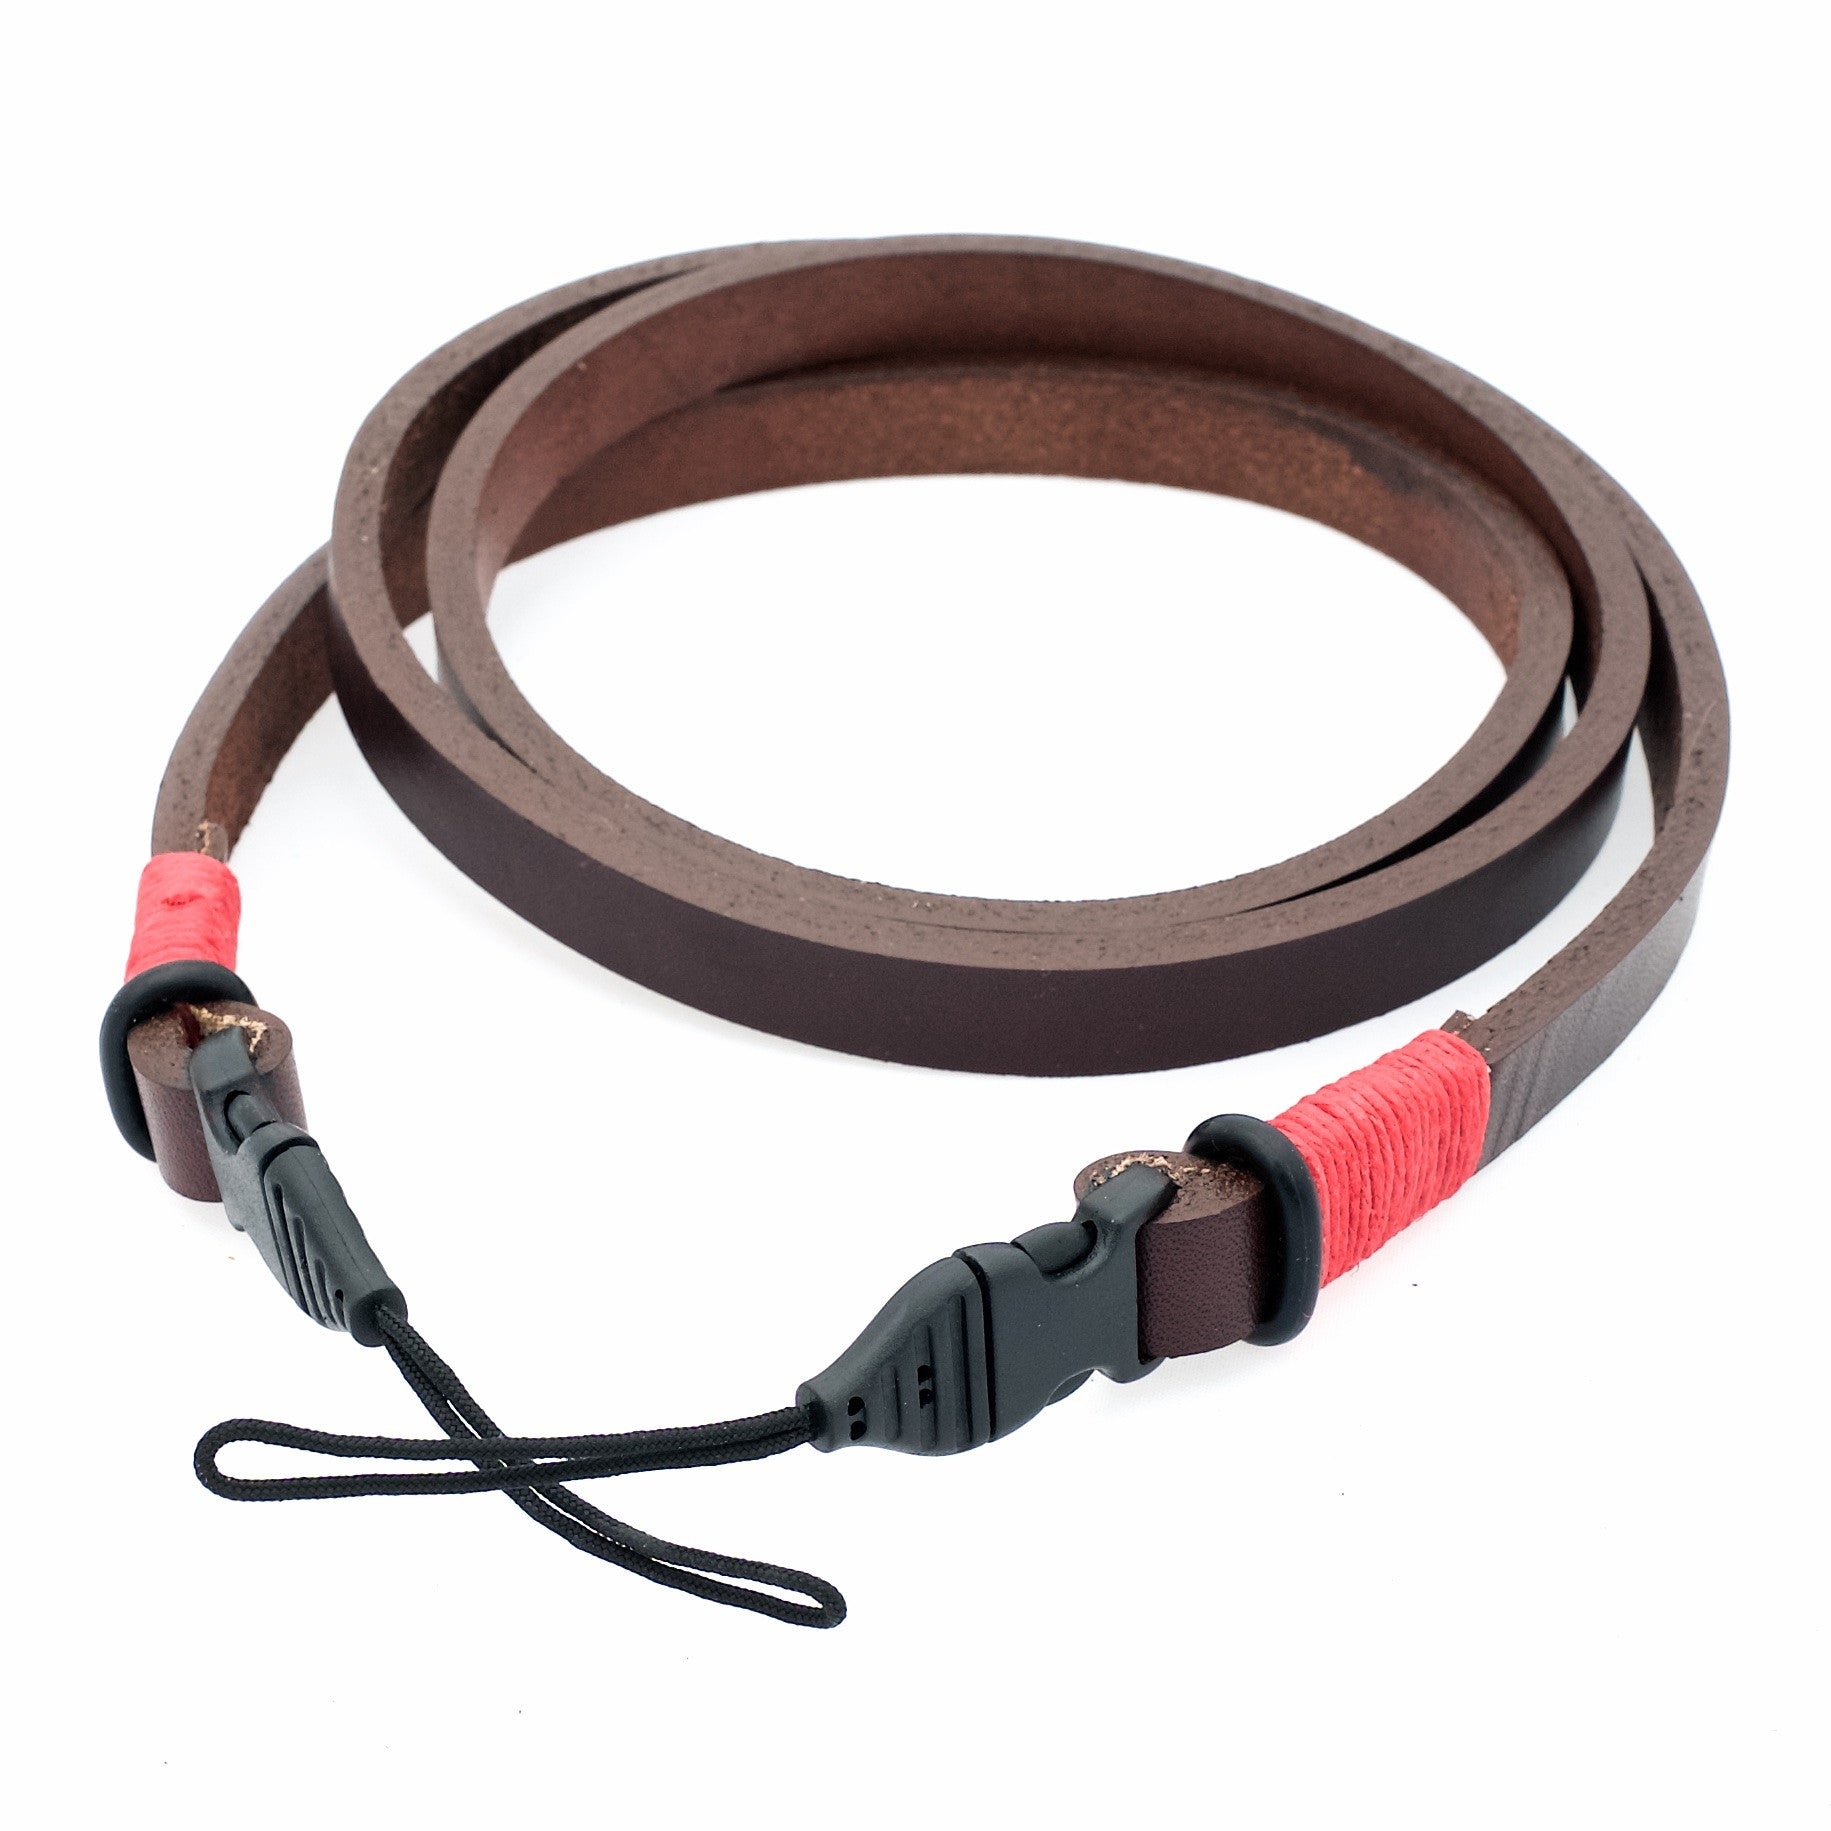 Horween Leather Camera Neck Strap w/ Quick Release- Brown/Red